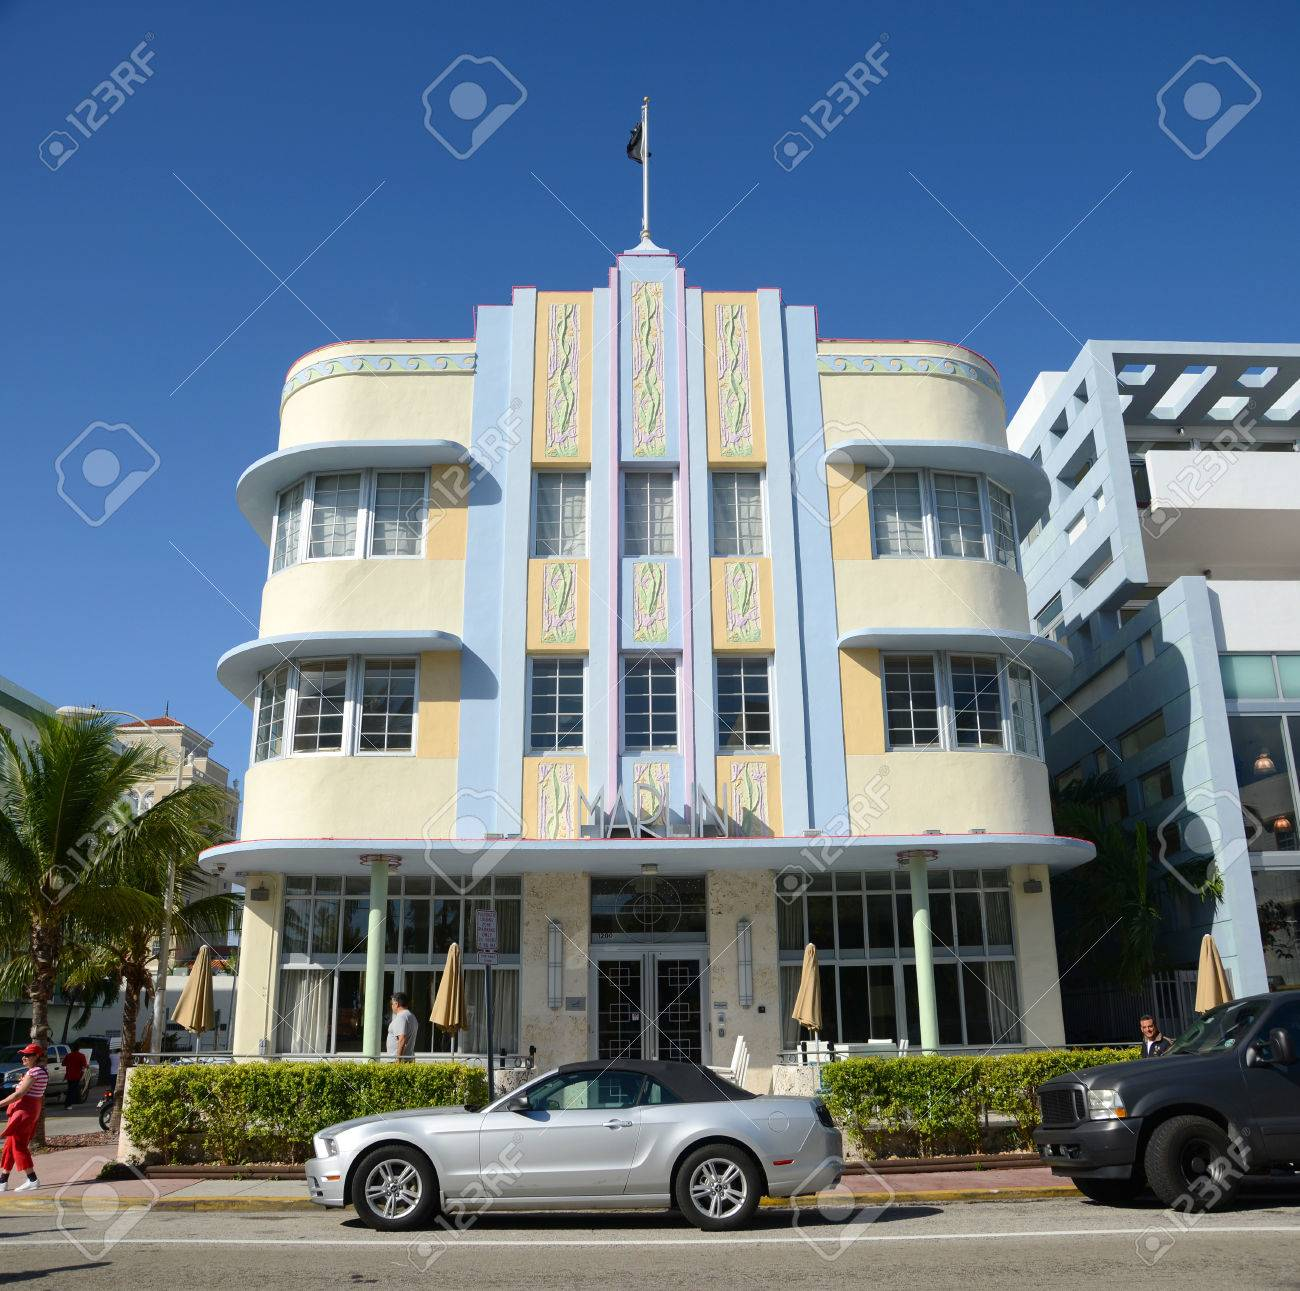 art deco style building marlin hotel in miami beach in the morning